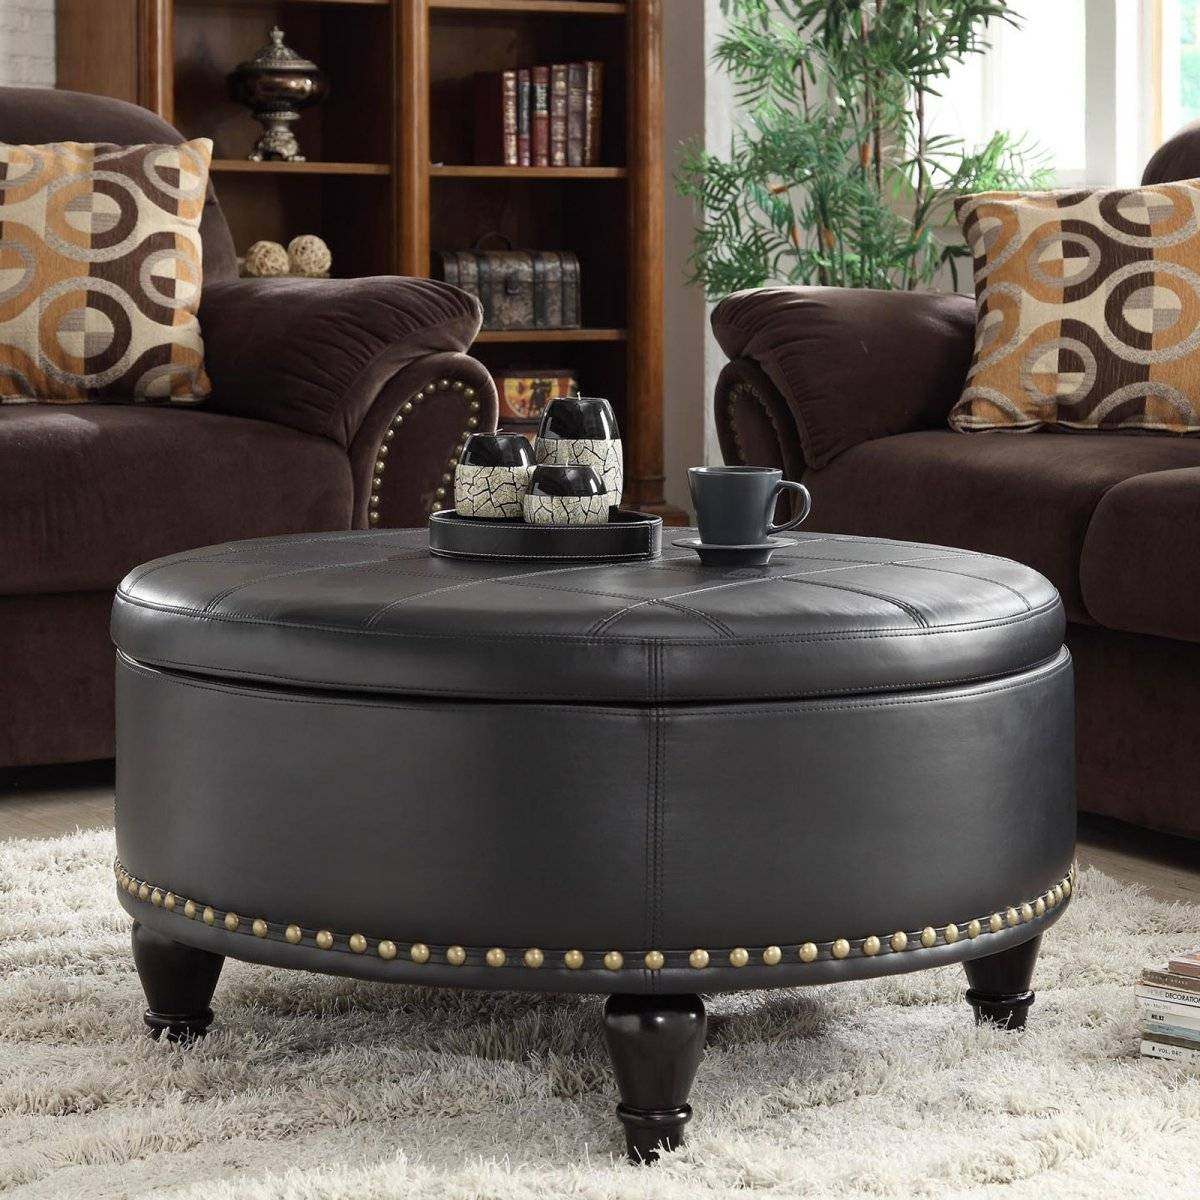 Brown Leather Coffee Table Storage Ottoman | Coffee Tables Decoration pertaining to Brown Leather Ottoman Coffee Tables With Storages (Image 8 of 30)